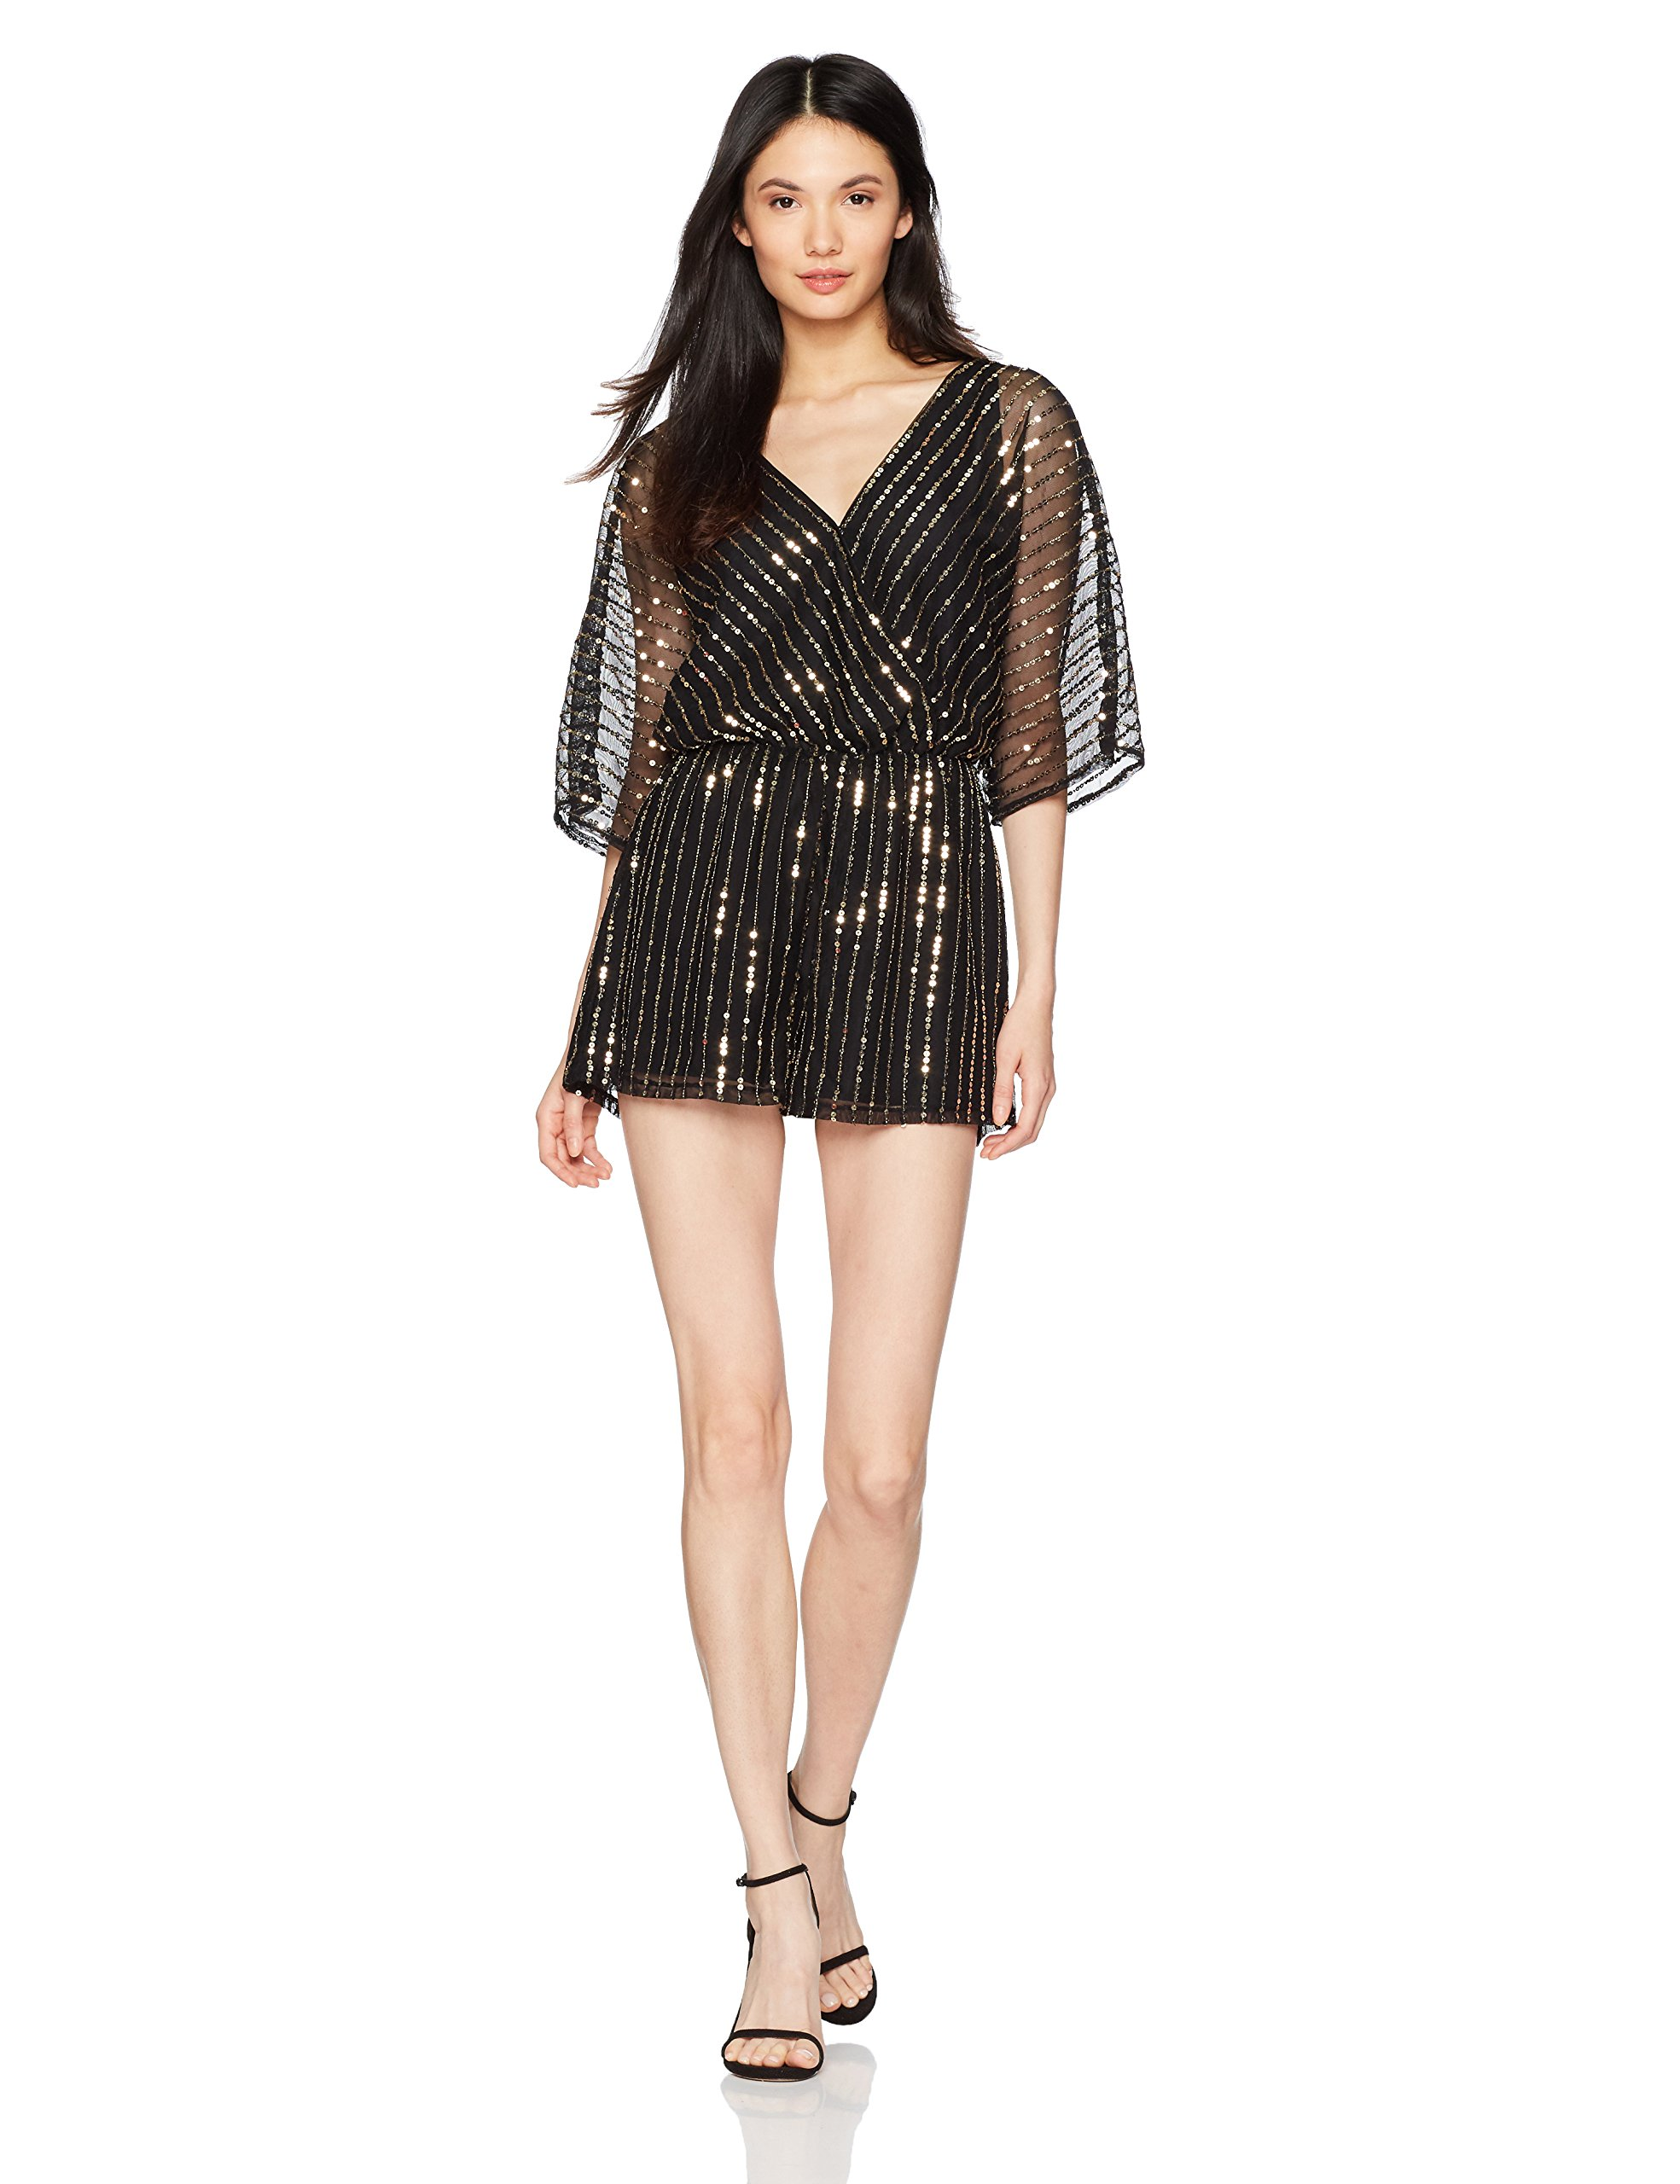 BB Dakota Women's Odelia Sequin Beaded Romper, Black, Medium